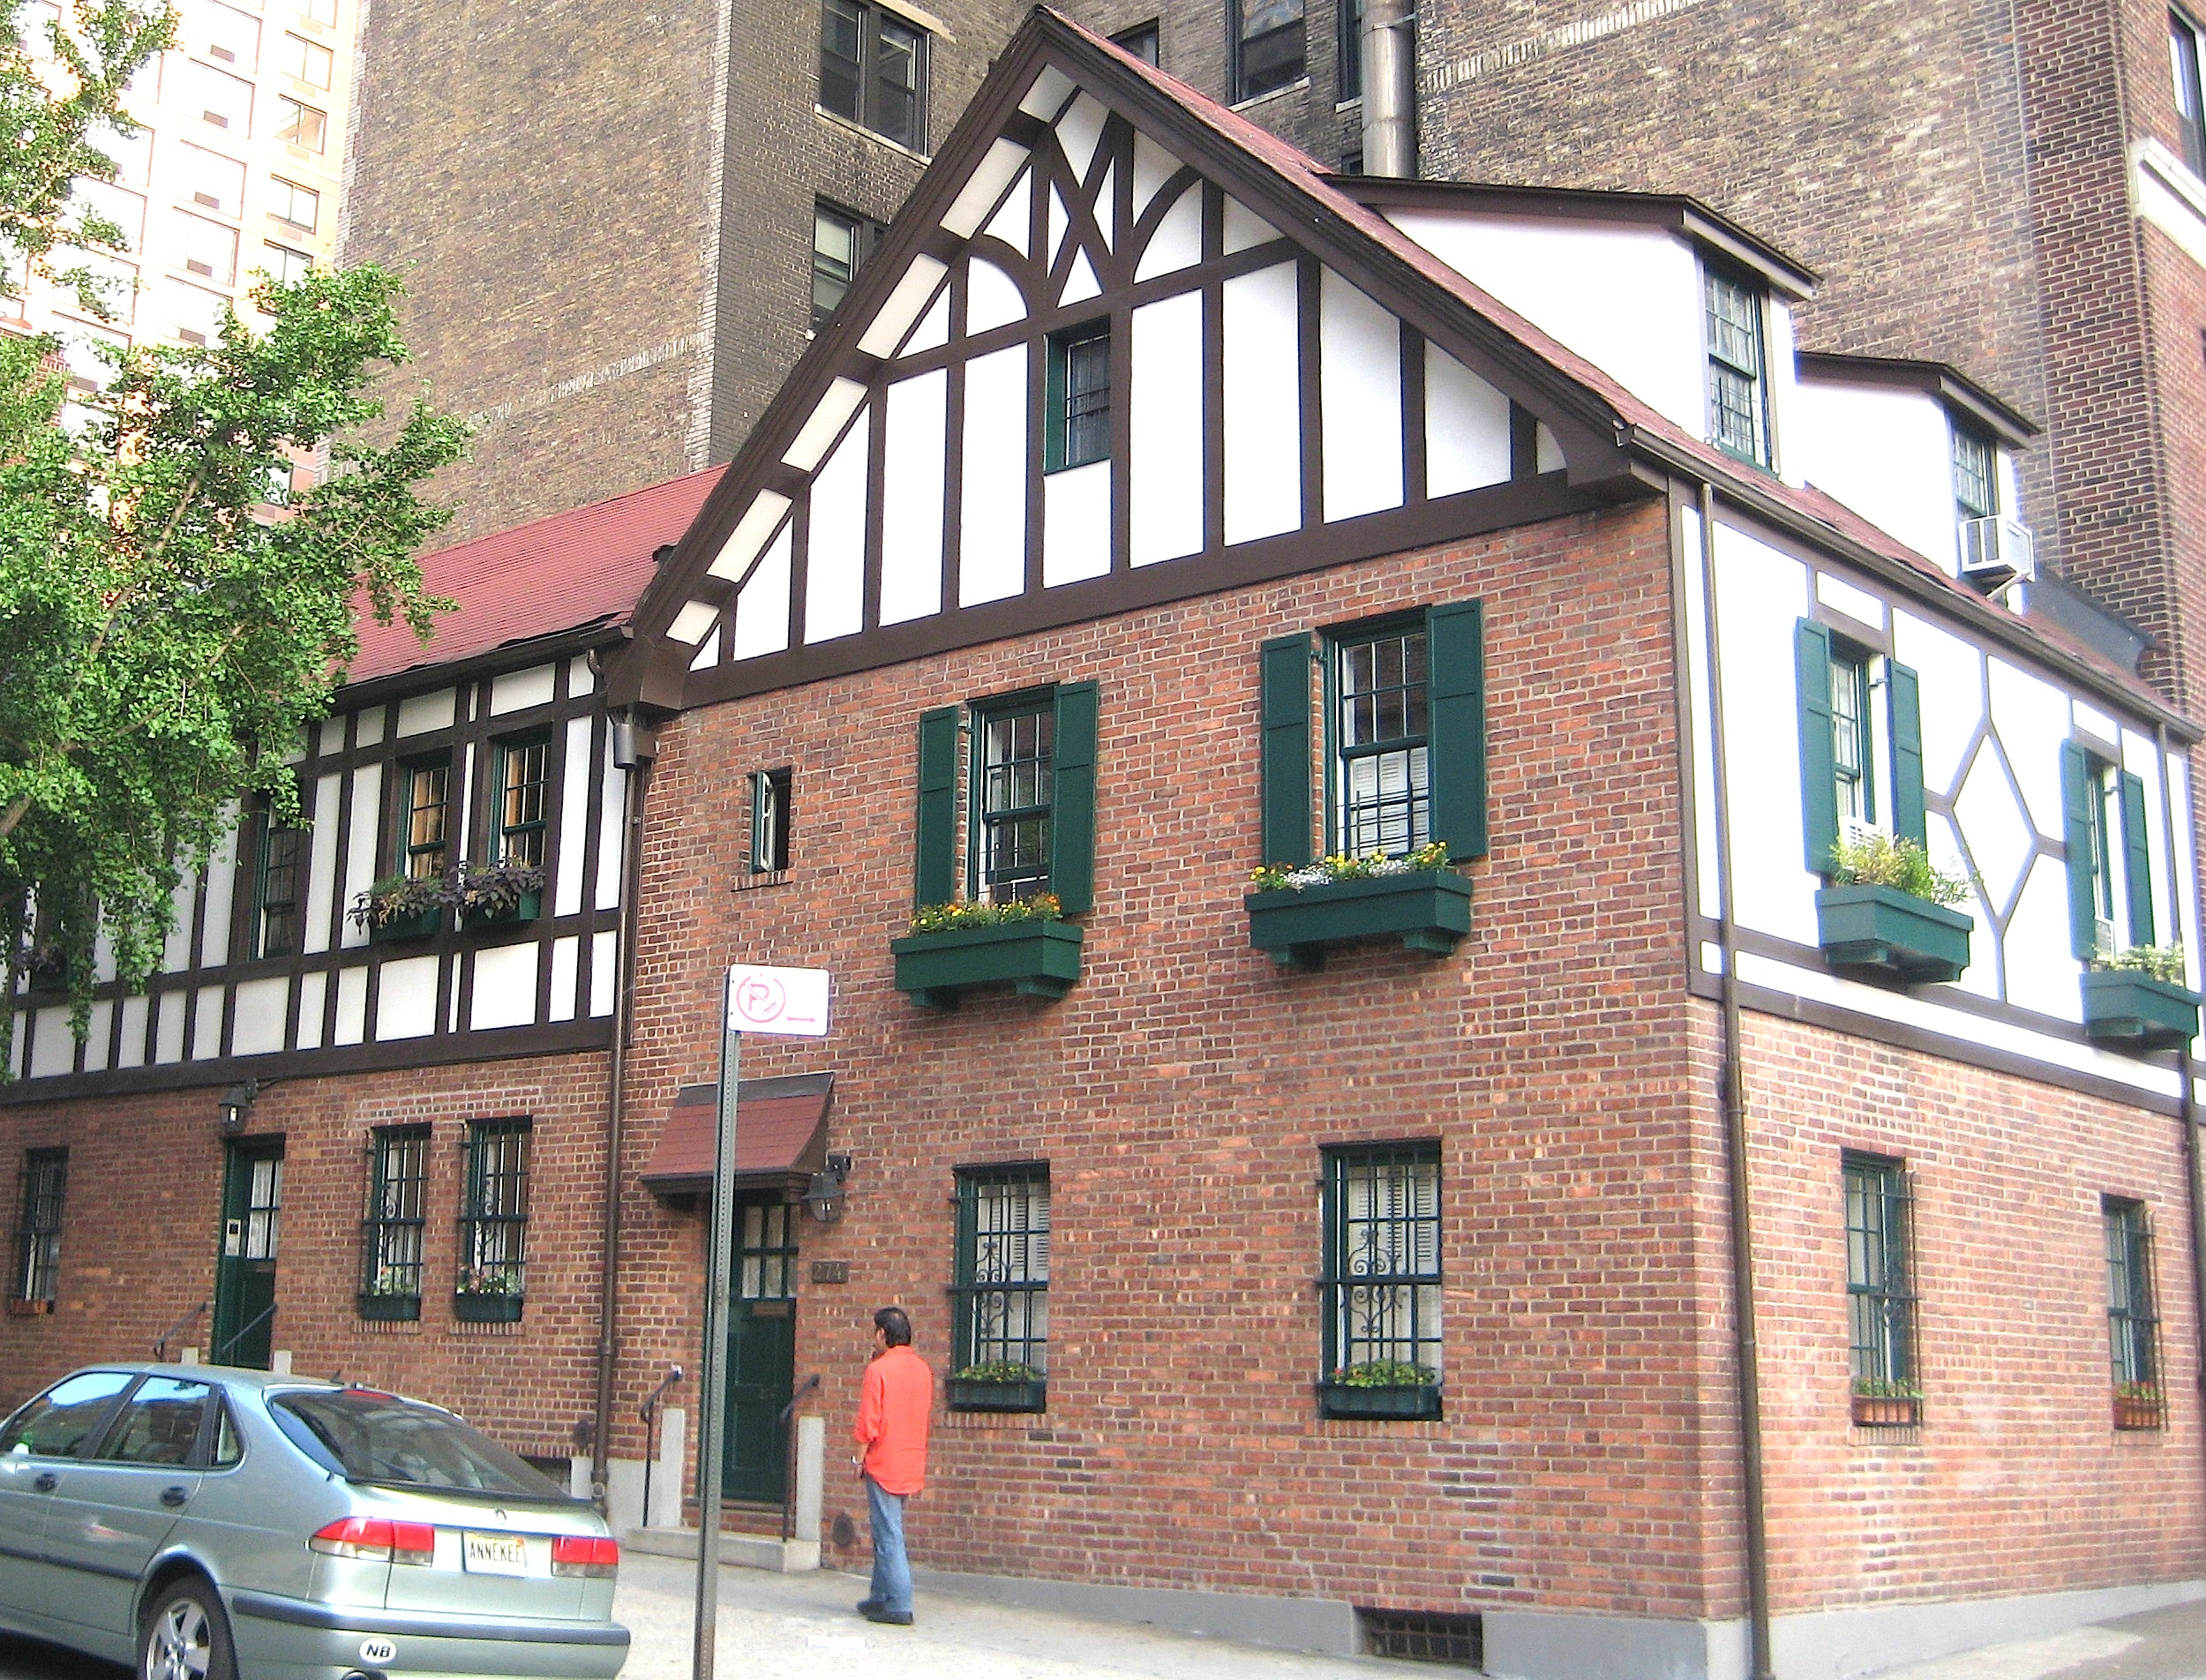 Tudor style buildings in new york city ephemeral new york for Upper west side apartments nyc